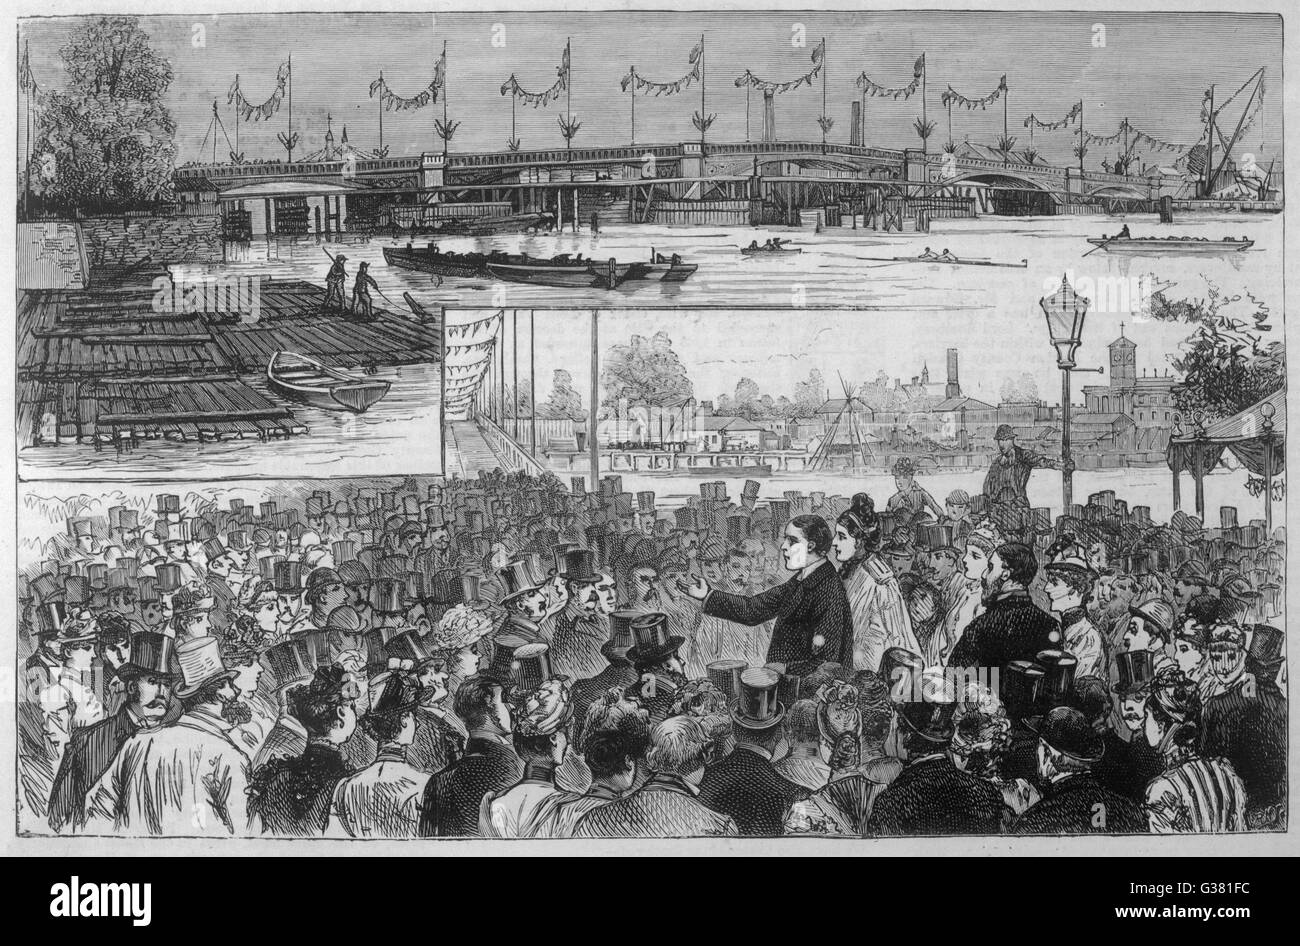 Opening of the bridge by the  Earl of Roseberry.        Date: 21st July 1890. - Stock Image